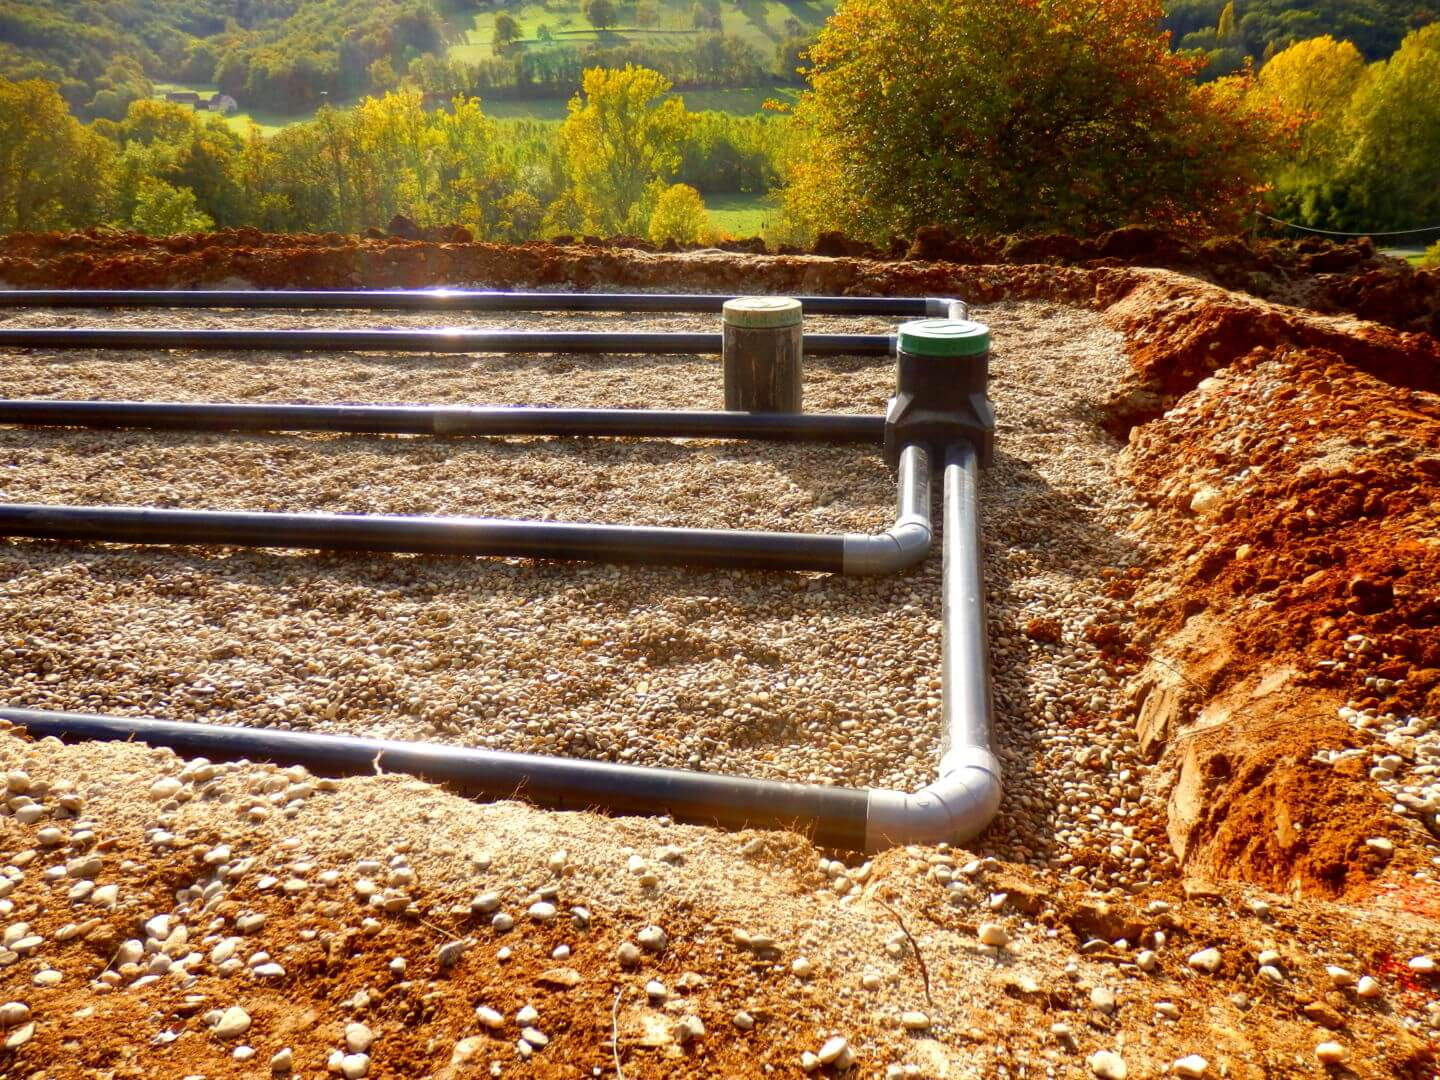 Municipal and Community Septic Systems-Fayetteville Septic Tank Services, Installation, & Repairs-We offer Septic Service & Repairs, Septic Tank Installations, Septic Tank Cleaning, Commercial, Septic System, Drain Cleaning, Line Snaking, Portable Toilet, Grease Trap Pumping & Cleaning, Septic Tank Pumping, Sewage Pump, Sewer Line Repair, Septic Tank Replacement, Septic Maintenance, Sewer Line Replacement, Porta Potty Rentals